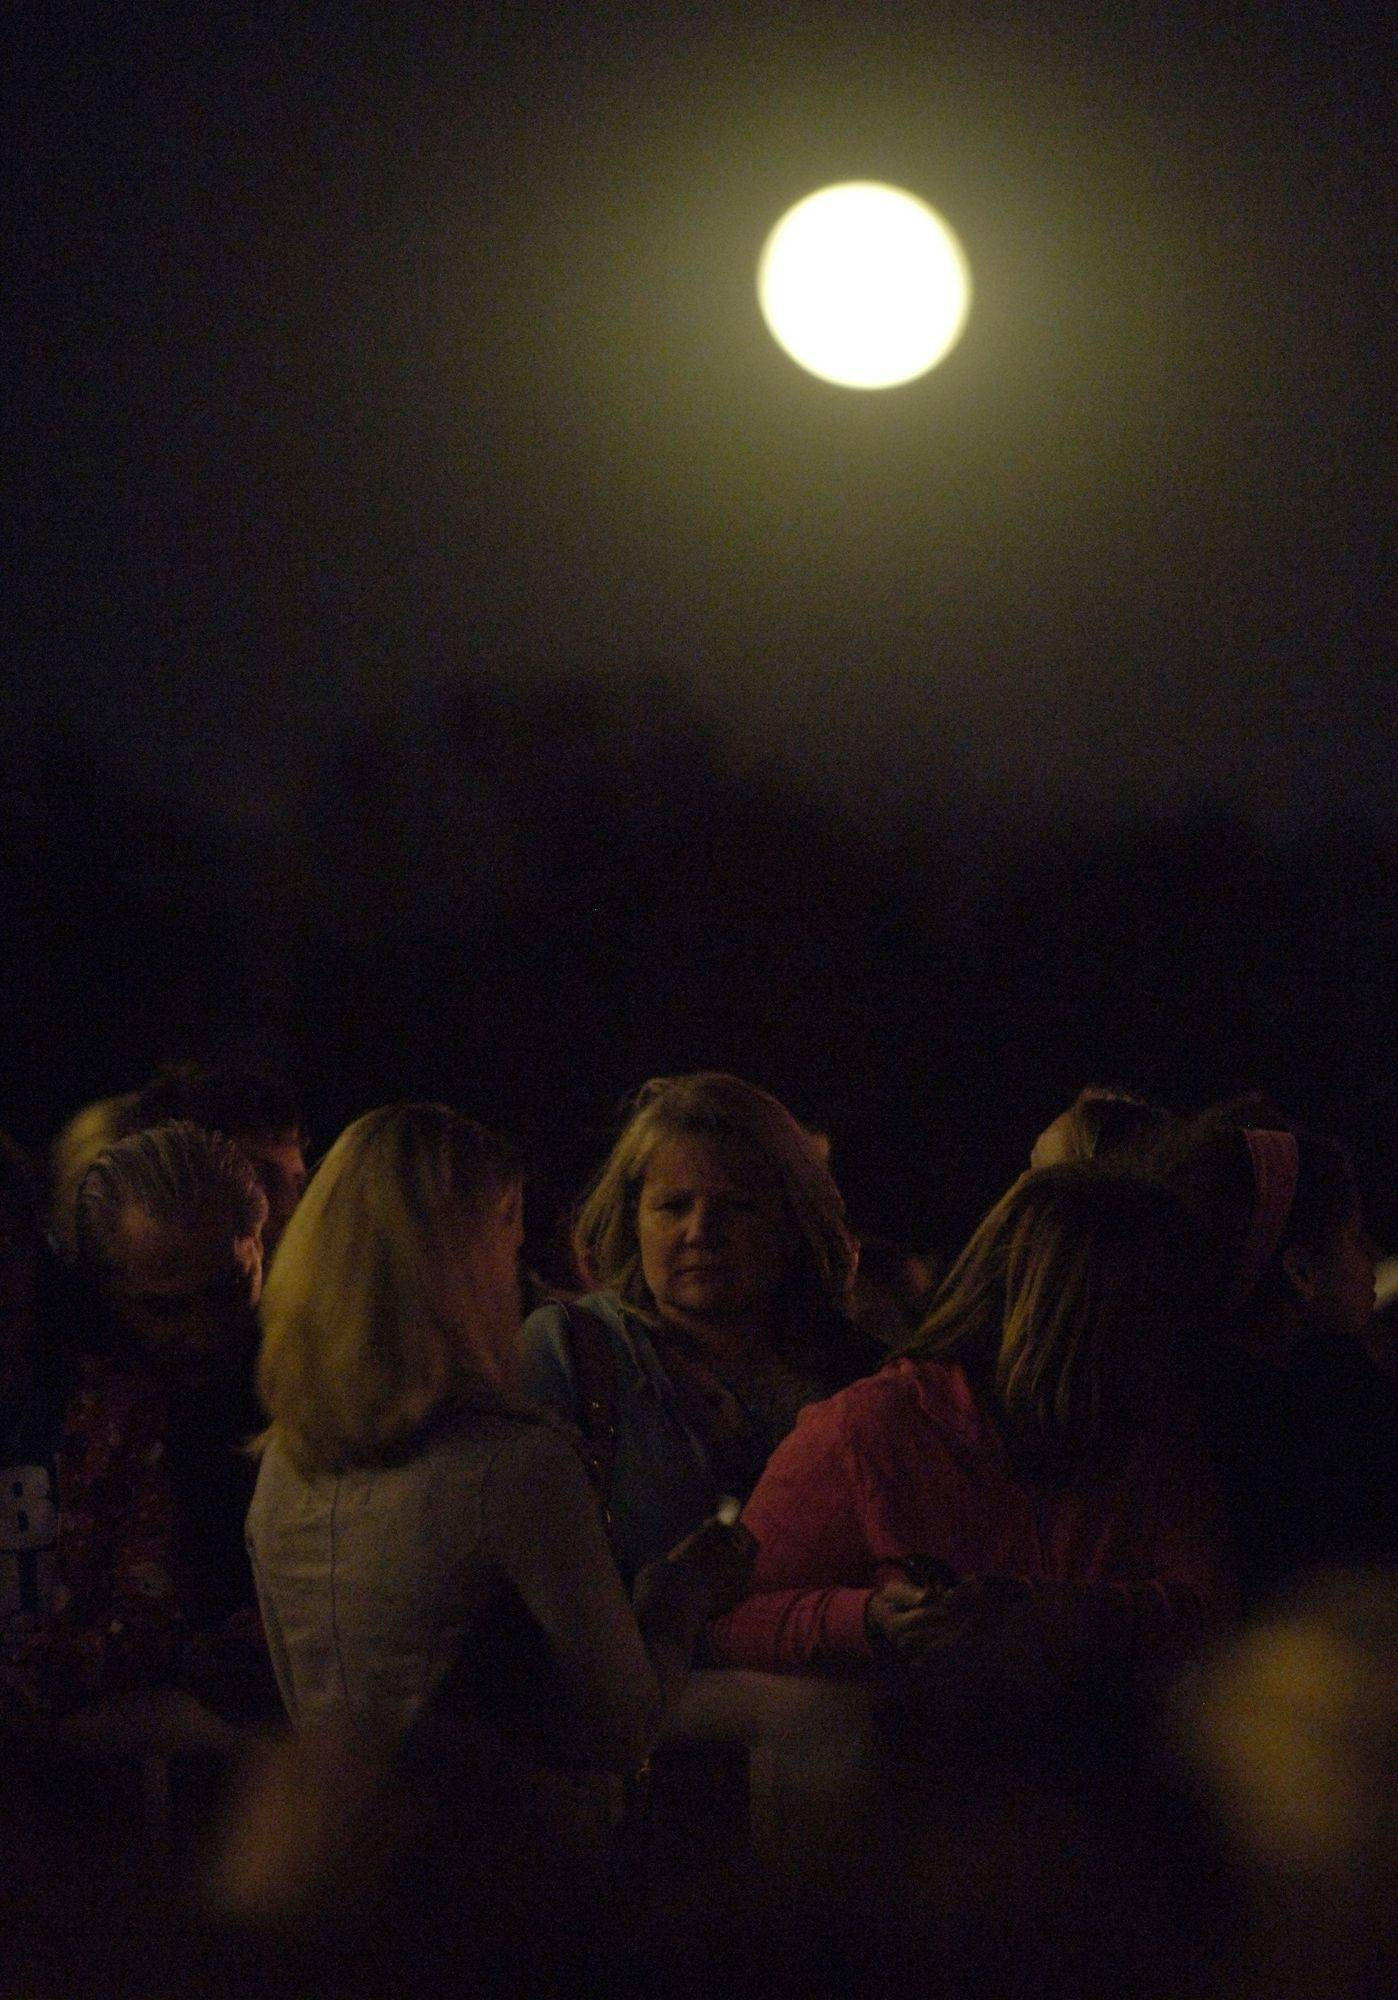 The moon rises while fans wait for the start of the Lee Dewyze concert at Arlington Park Friday evening.